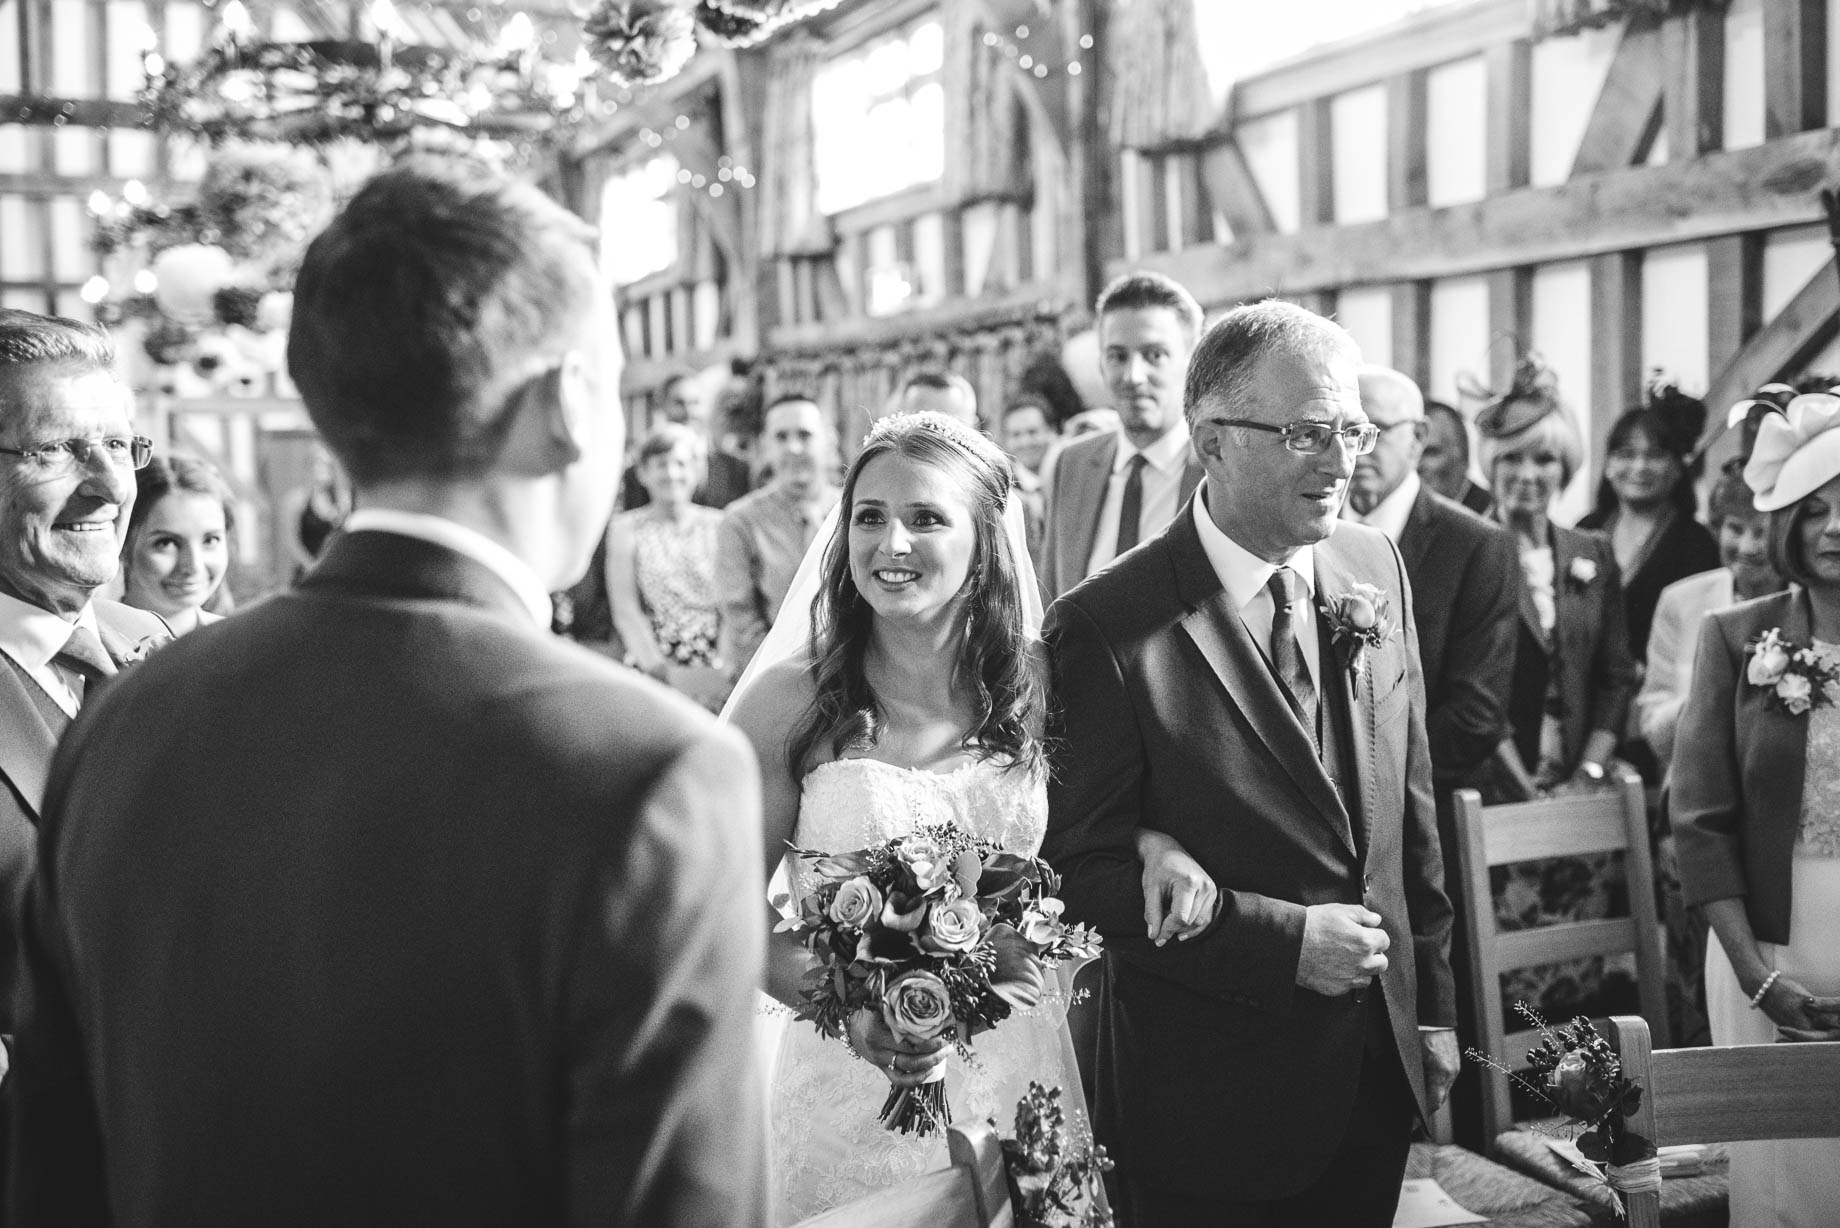 Gate Street Barn wedding photography - Guy Collier - Claire and Andy (52 of 192)